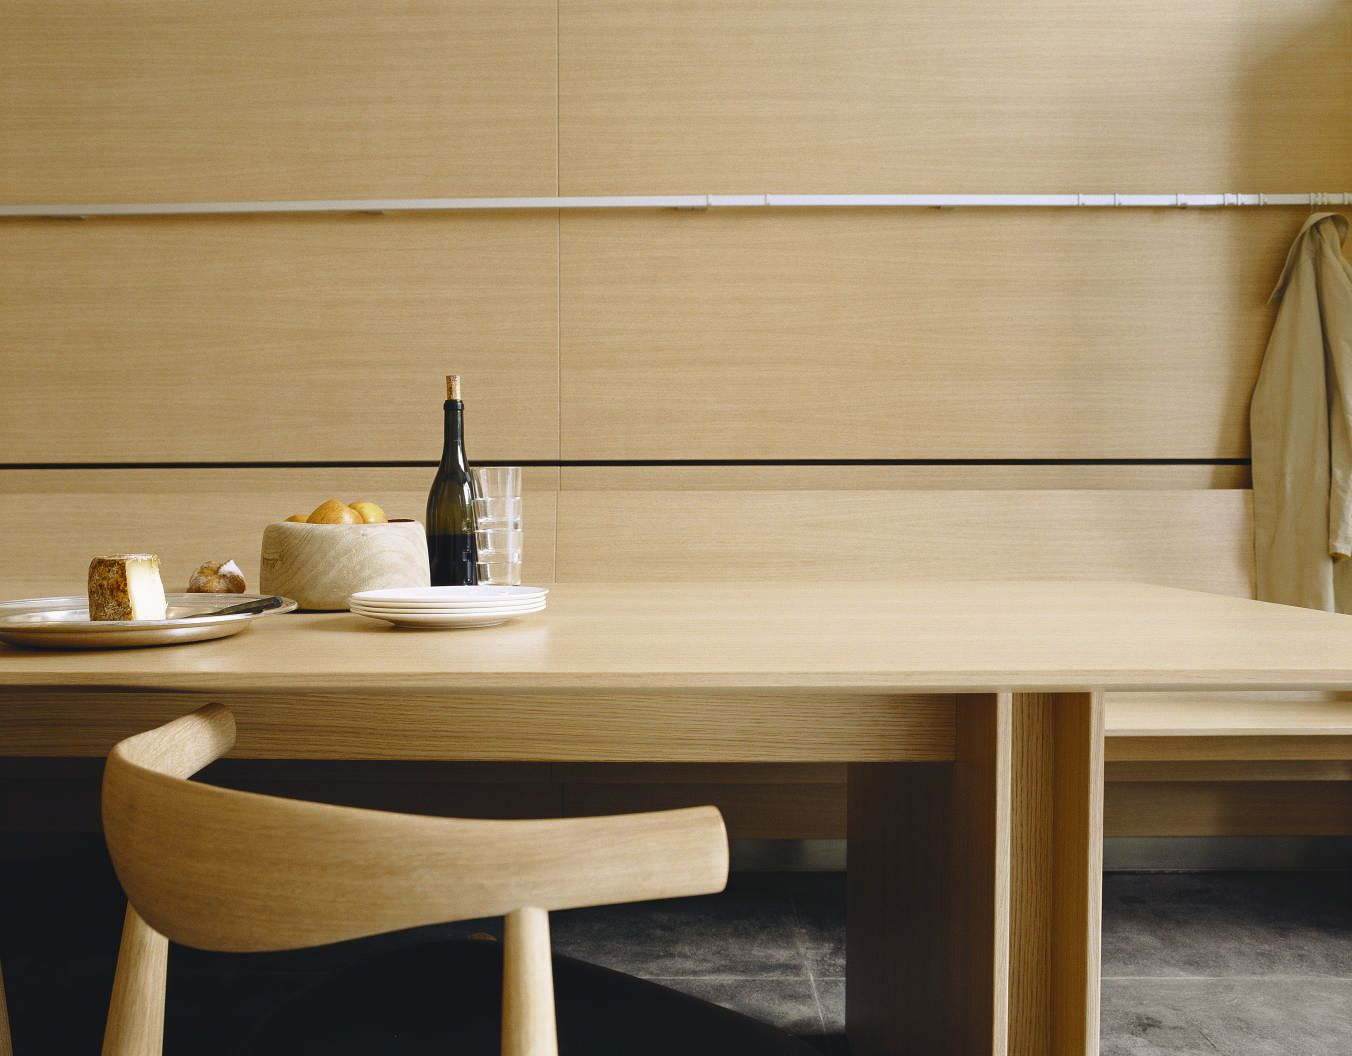 Bulthaup C3 Table In Oak Finish